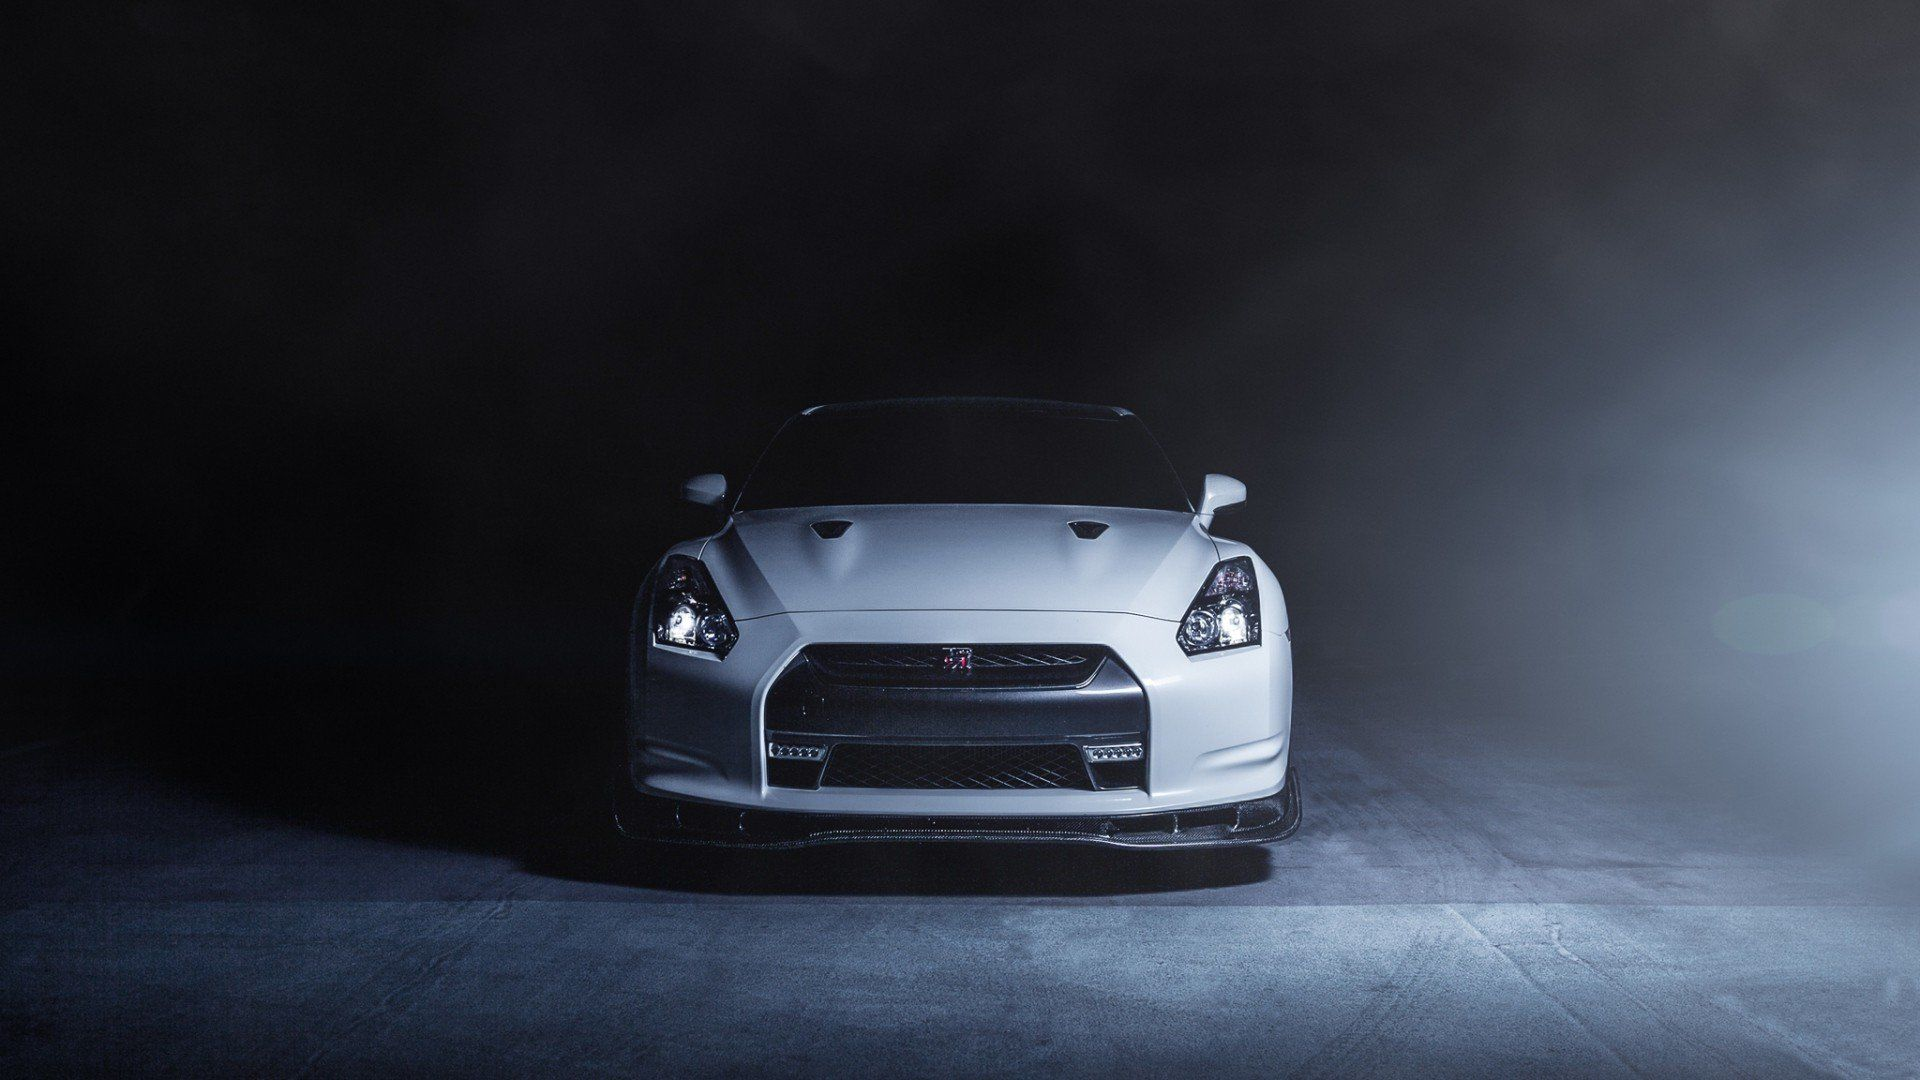 Nissan Gtr Wallpapers High Resolution And Quality Download